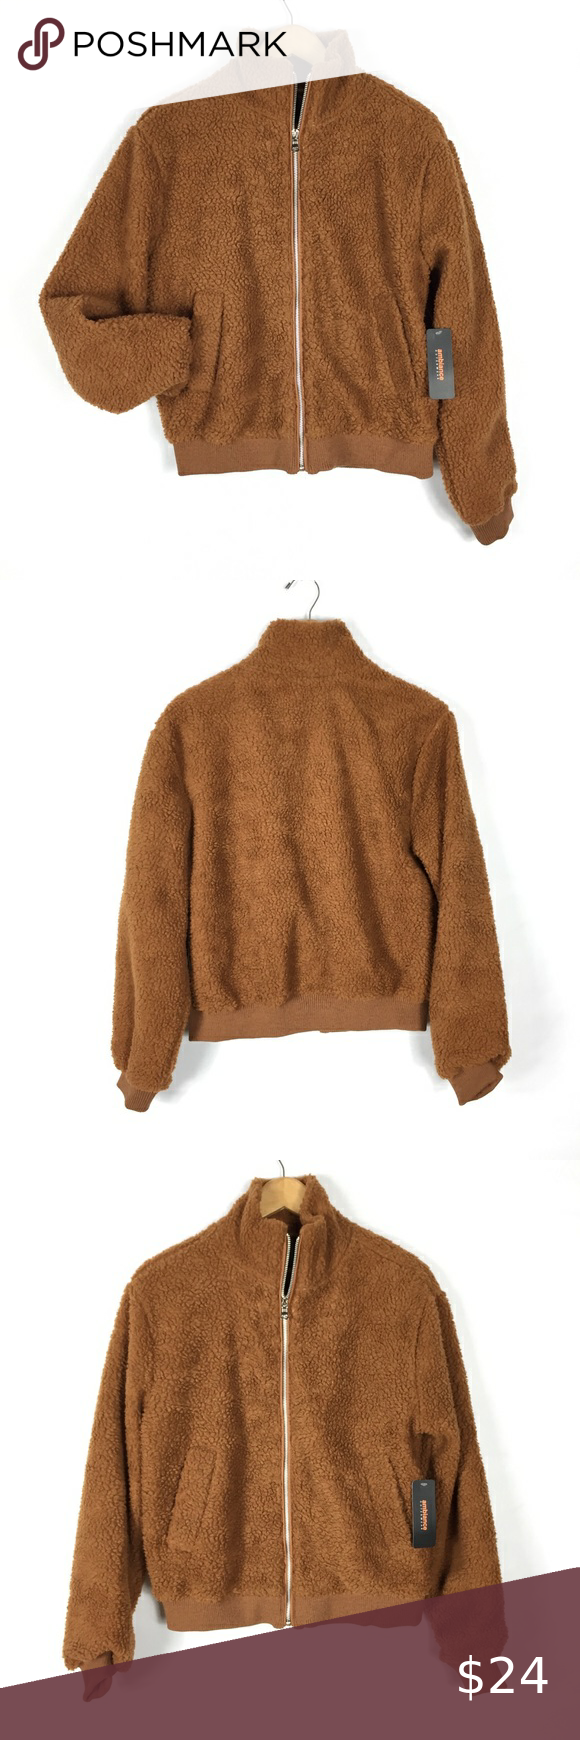 Nwt Ambiance Brown Teddy Bomber Jacket Bomber Jacket Jackets Clothes Design [ 1740 x 580 Pixel ]